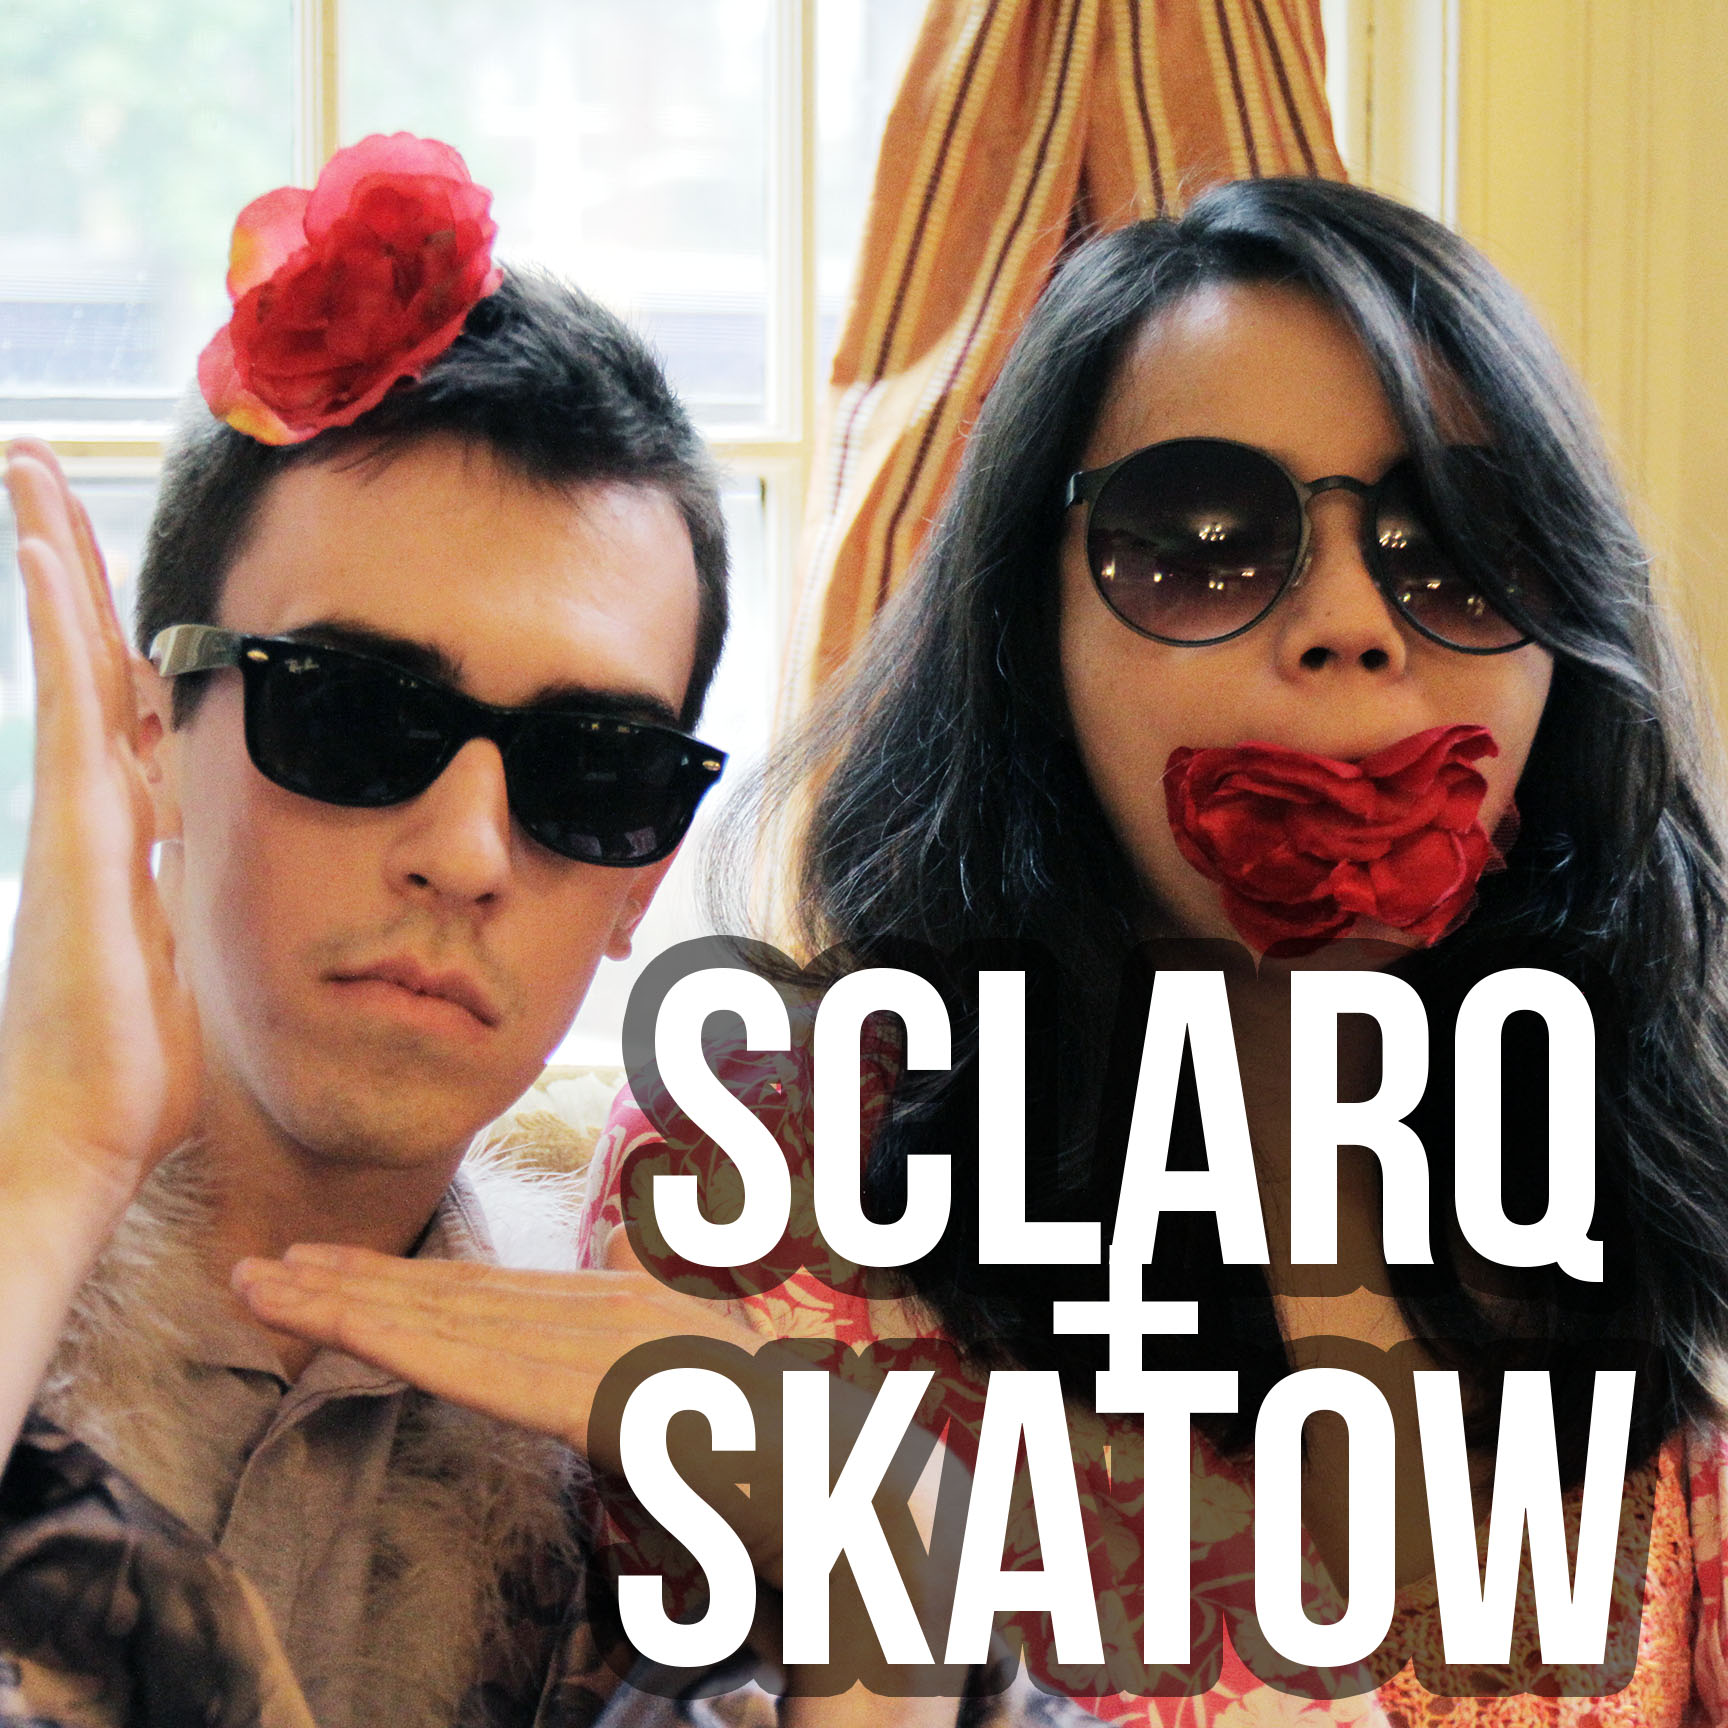 SCUSSION with SCLARQ + SKATOW